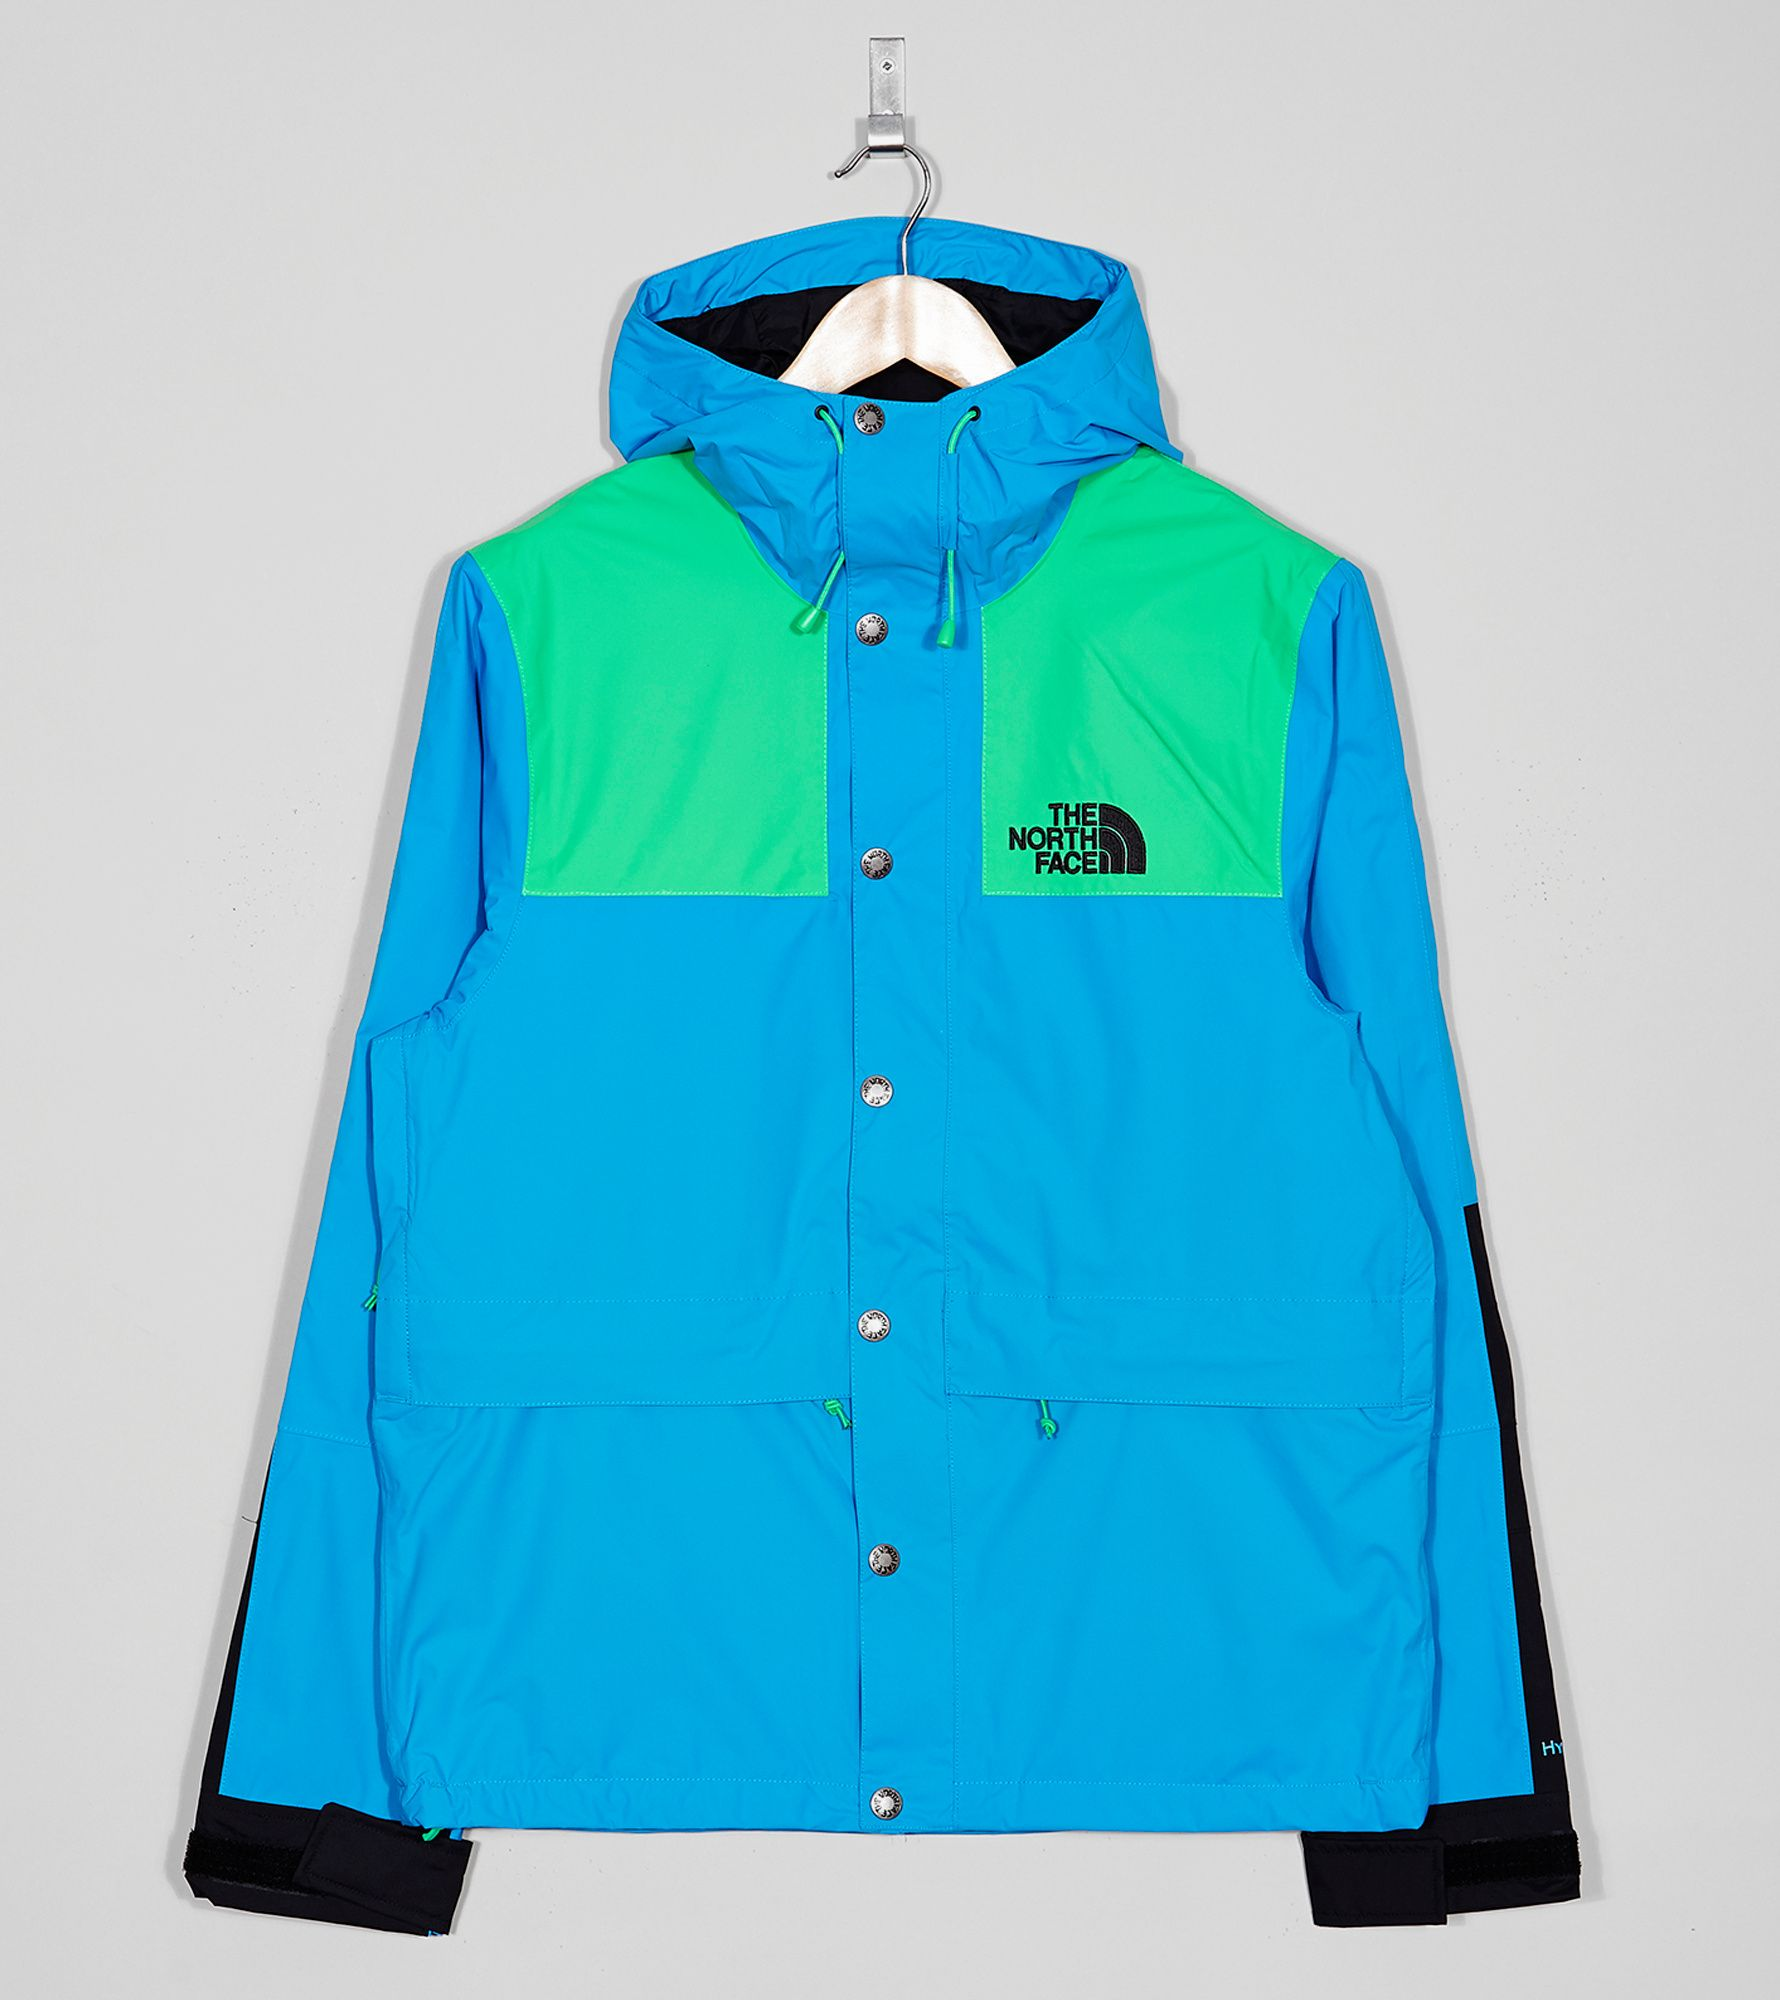 The North Face 1985 Rage Mountain Jacket  a59110a5c